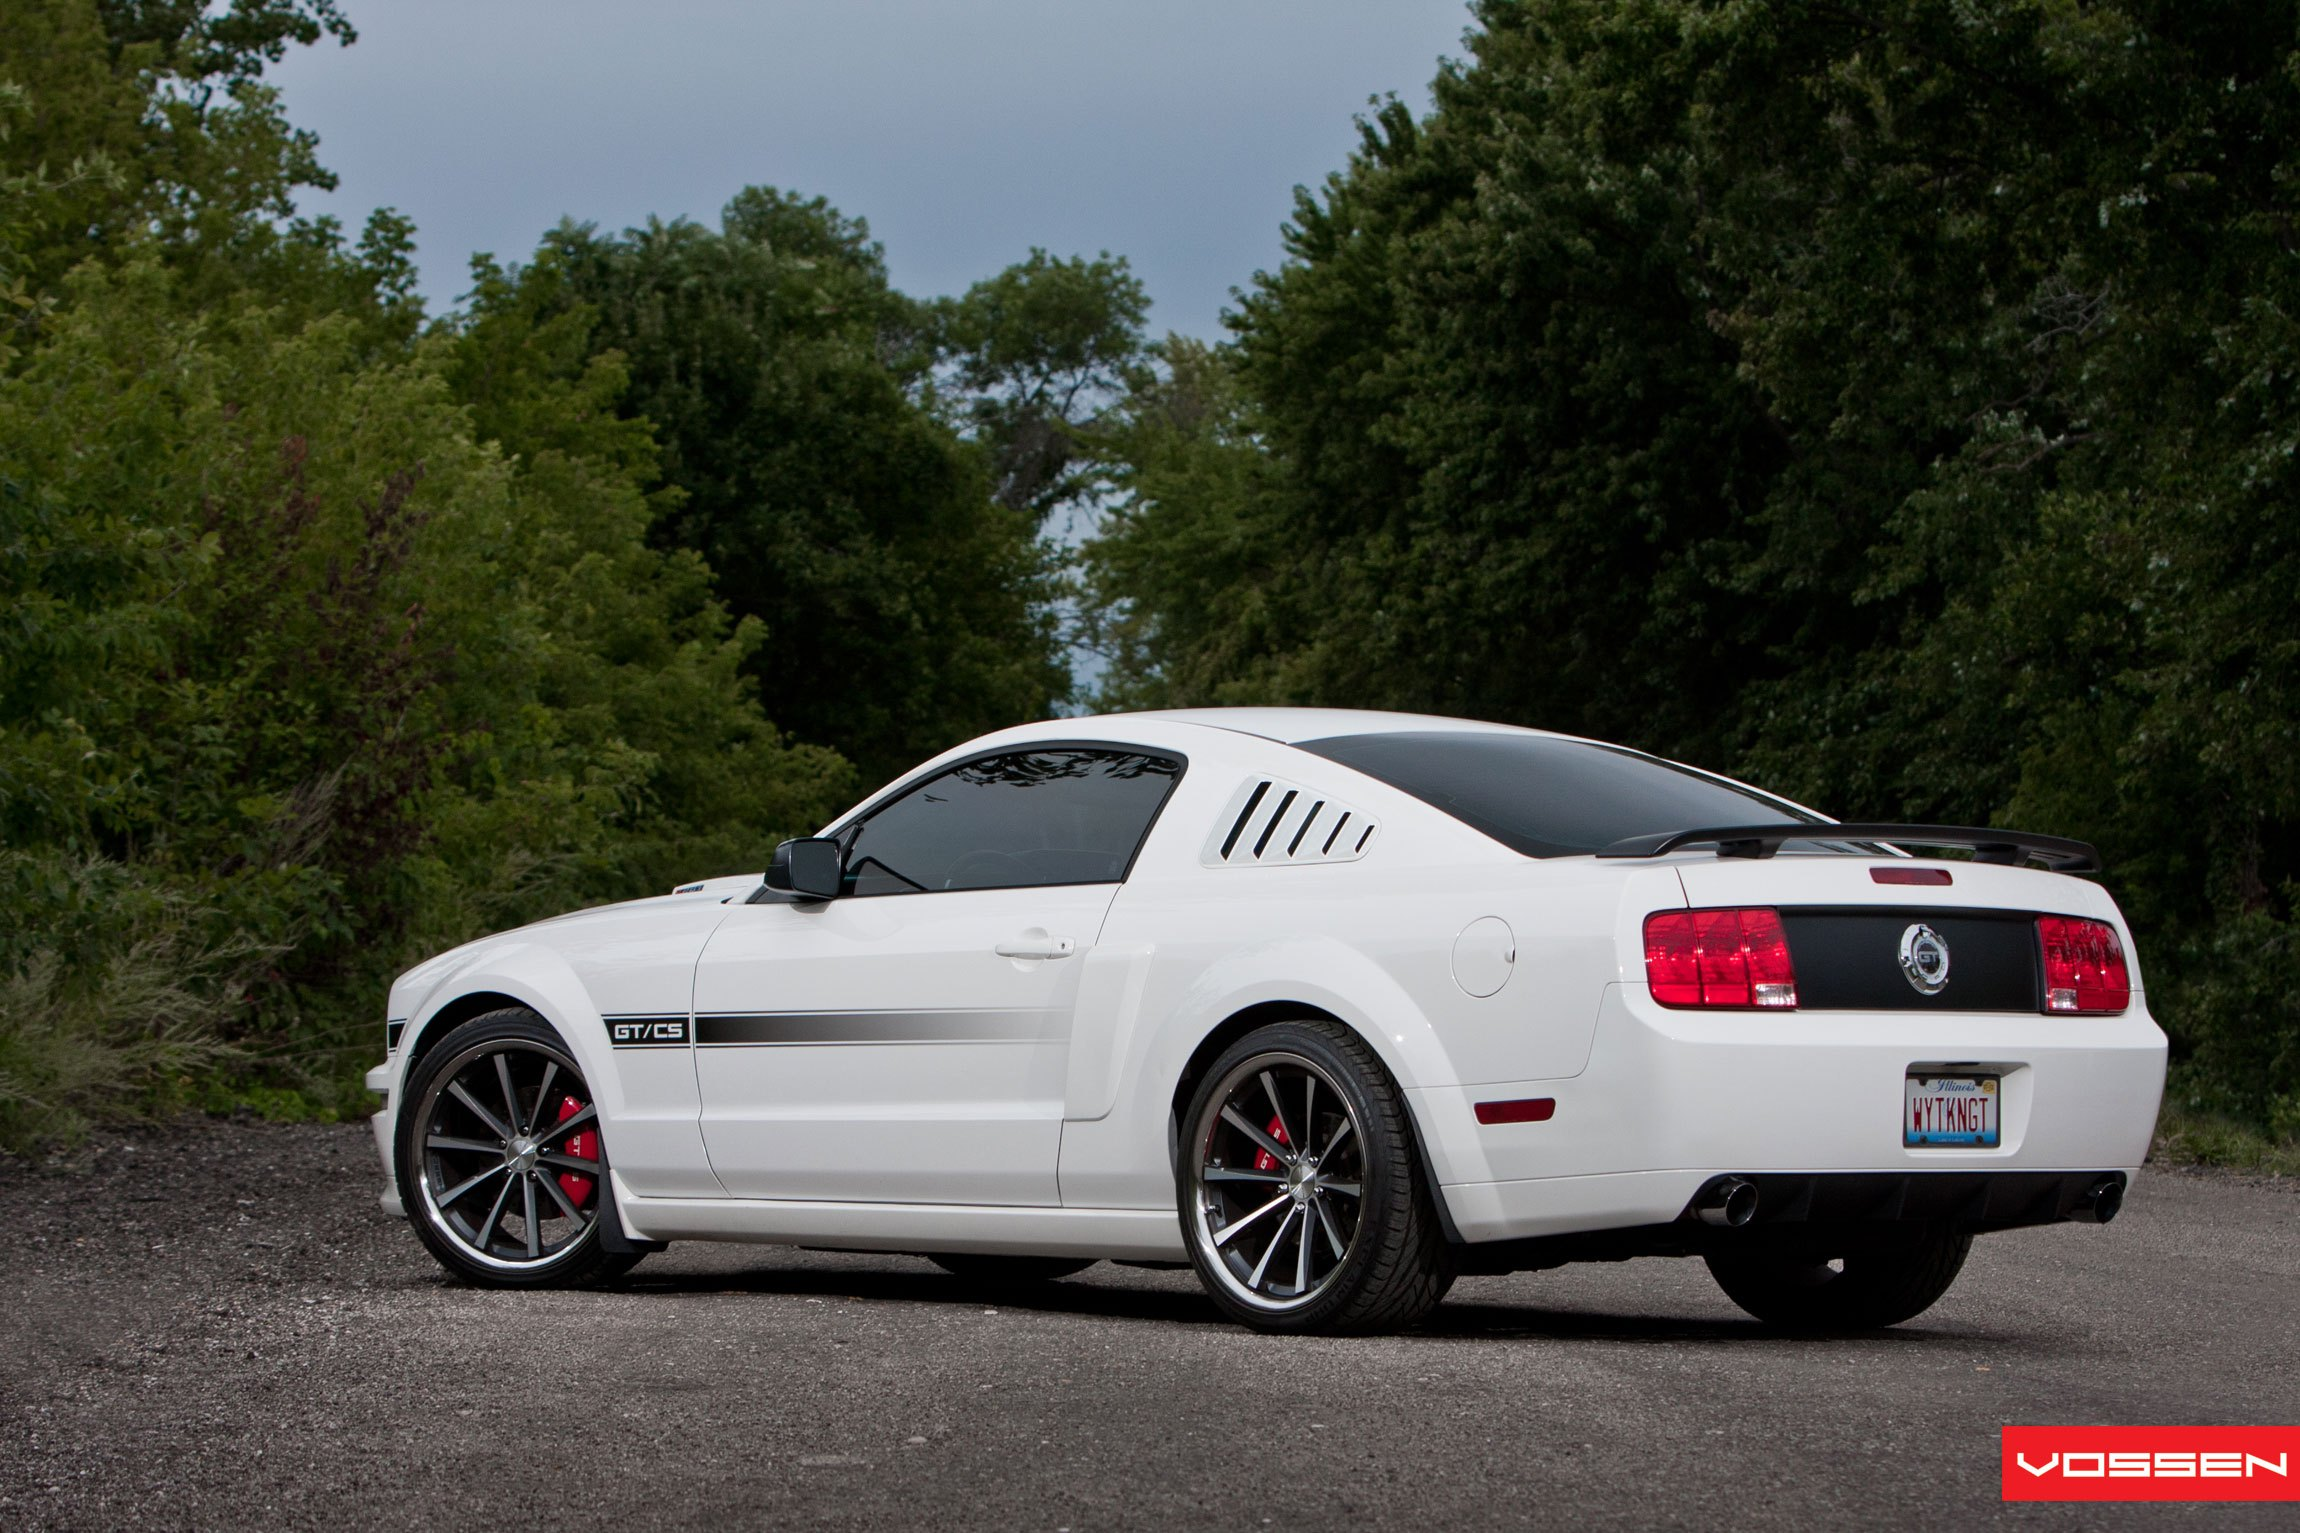 Sports Car Appearance at Its Best: Customized White Ford Mustang GT — CARiD.com Gallery